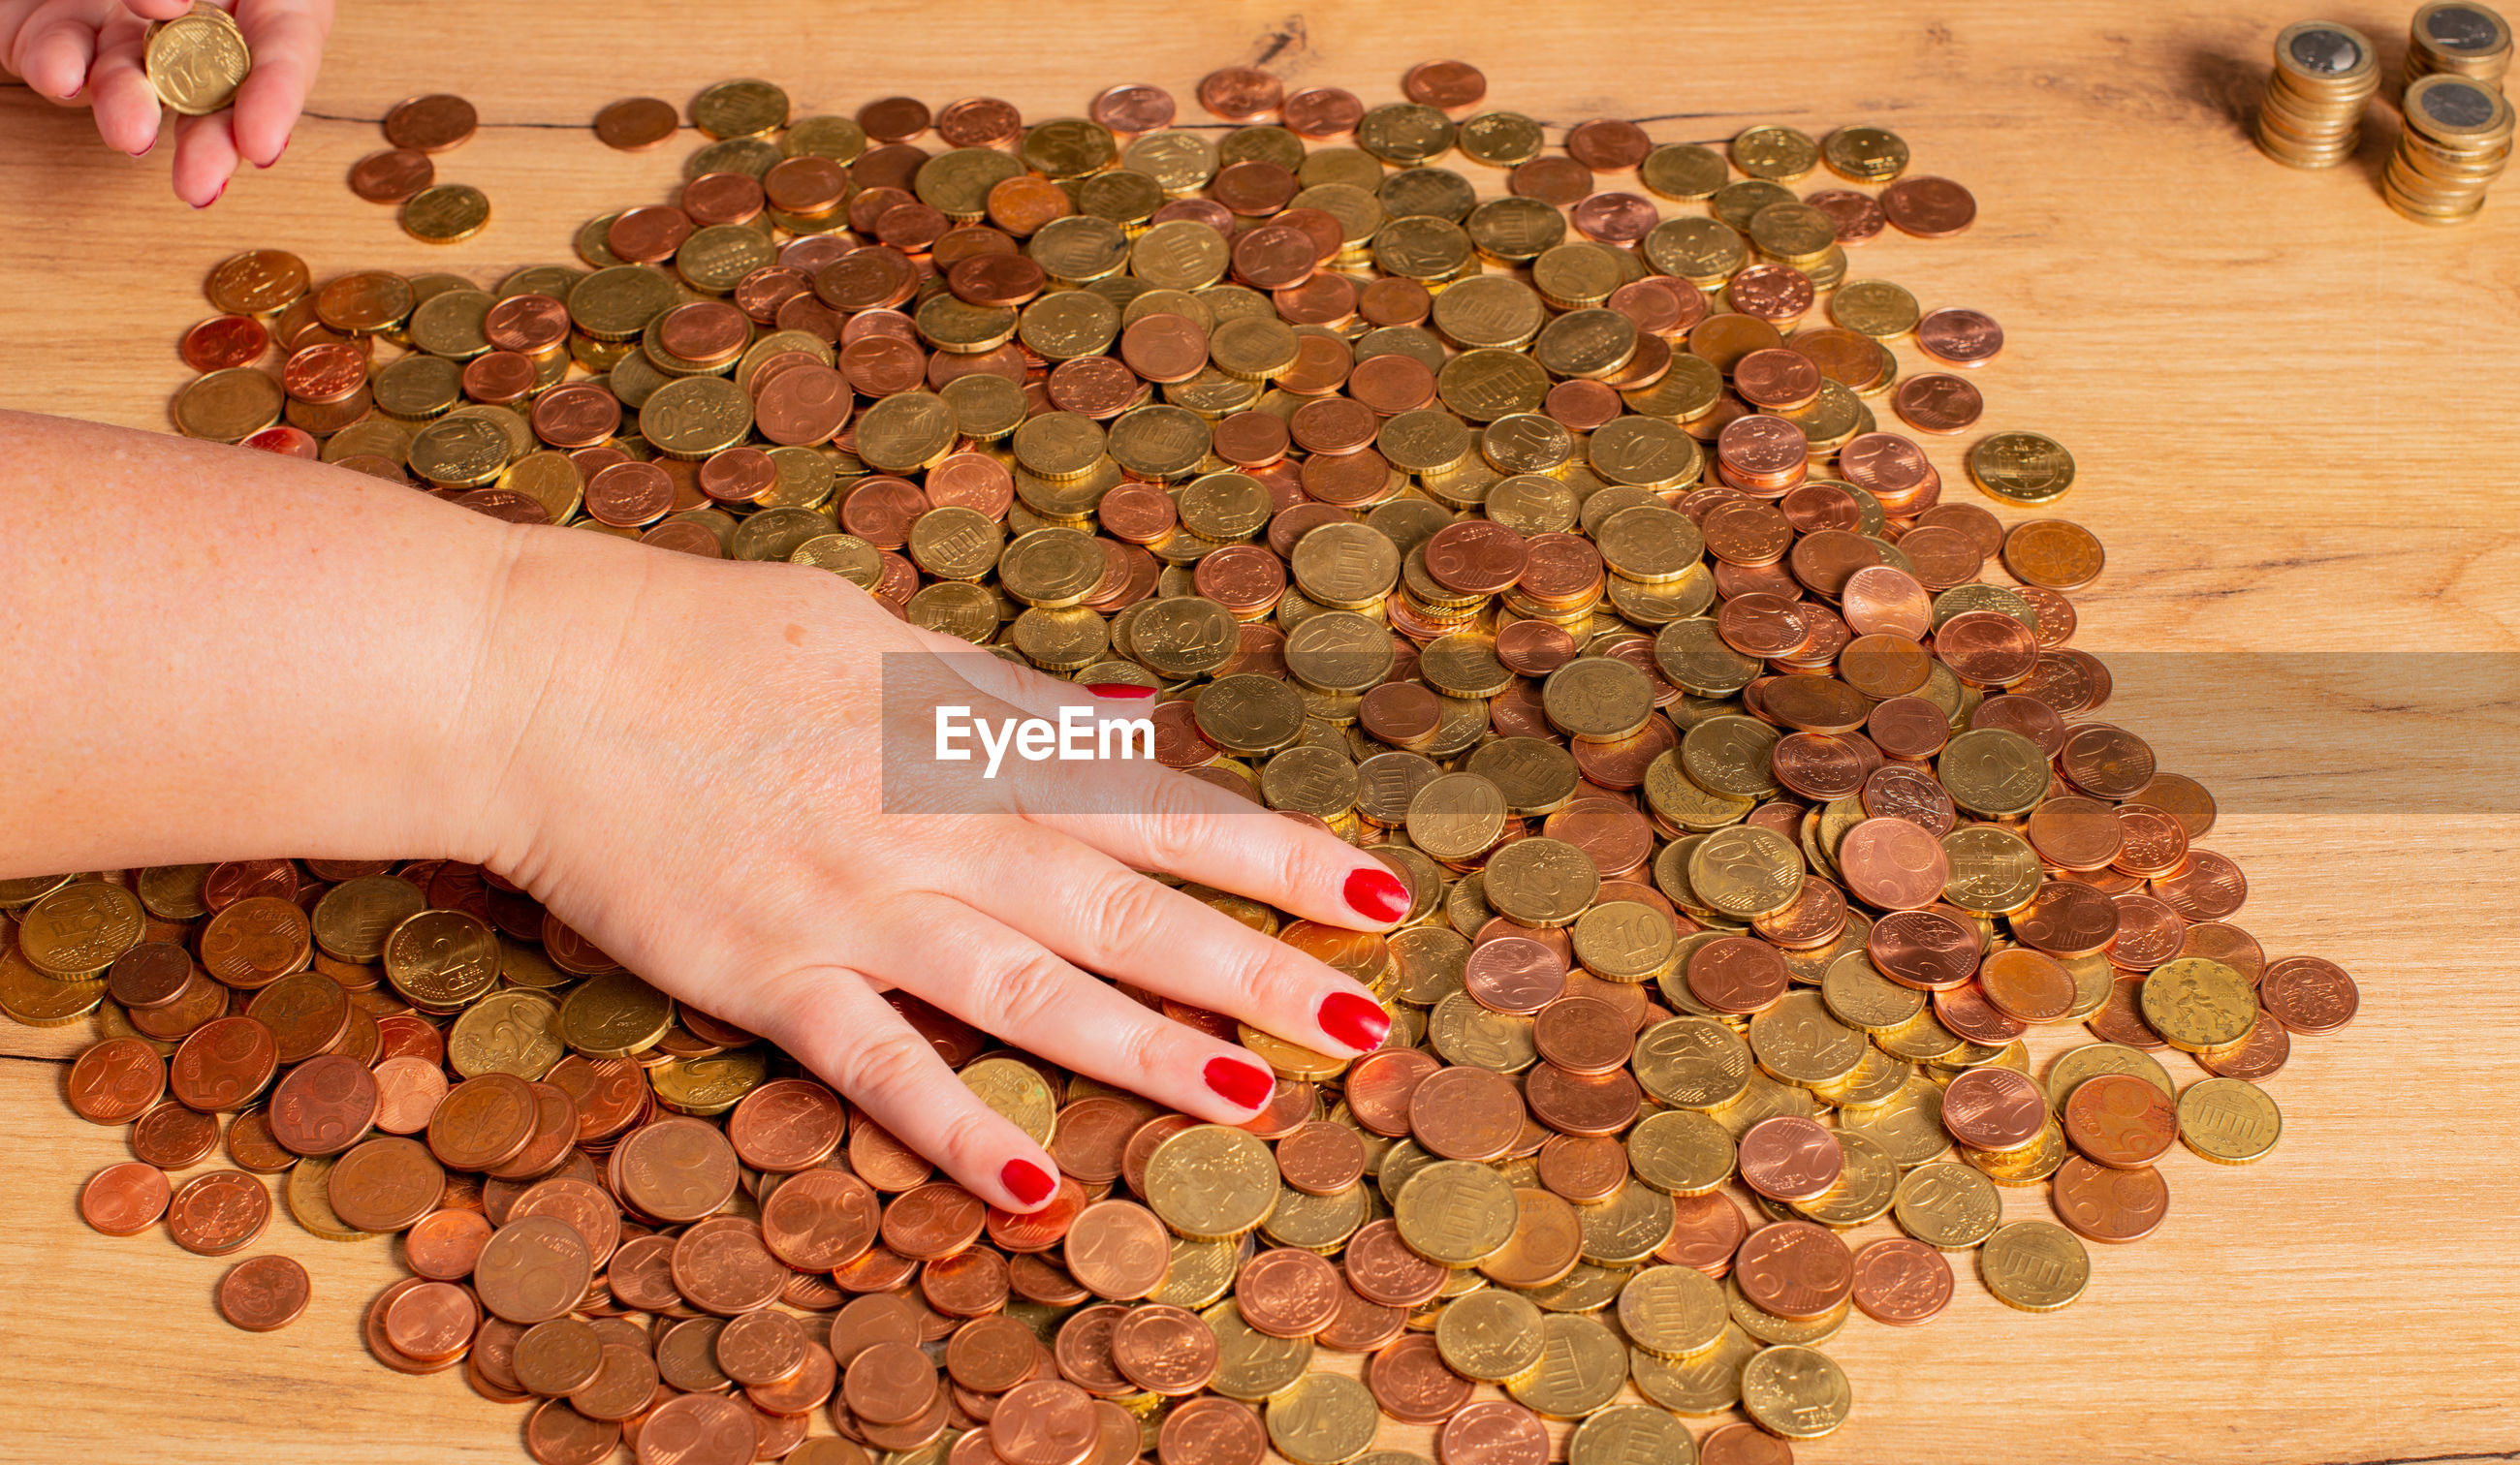 High angle view of woman hand counting coins on table